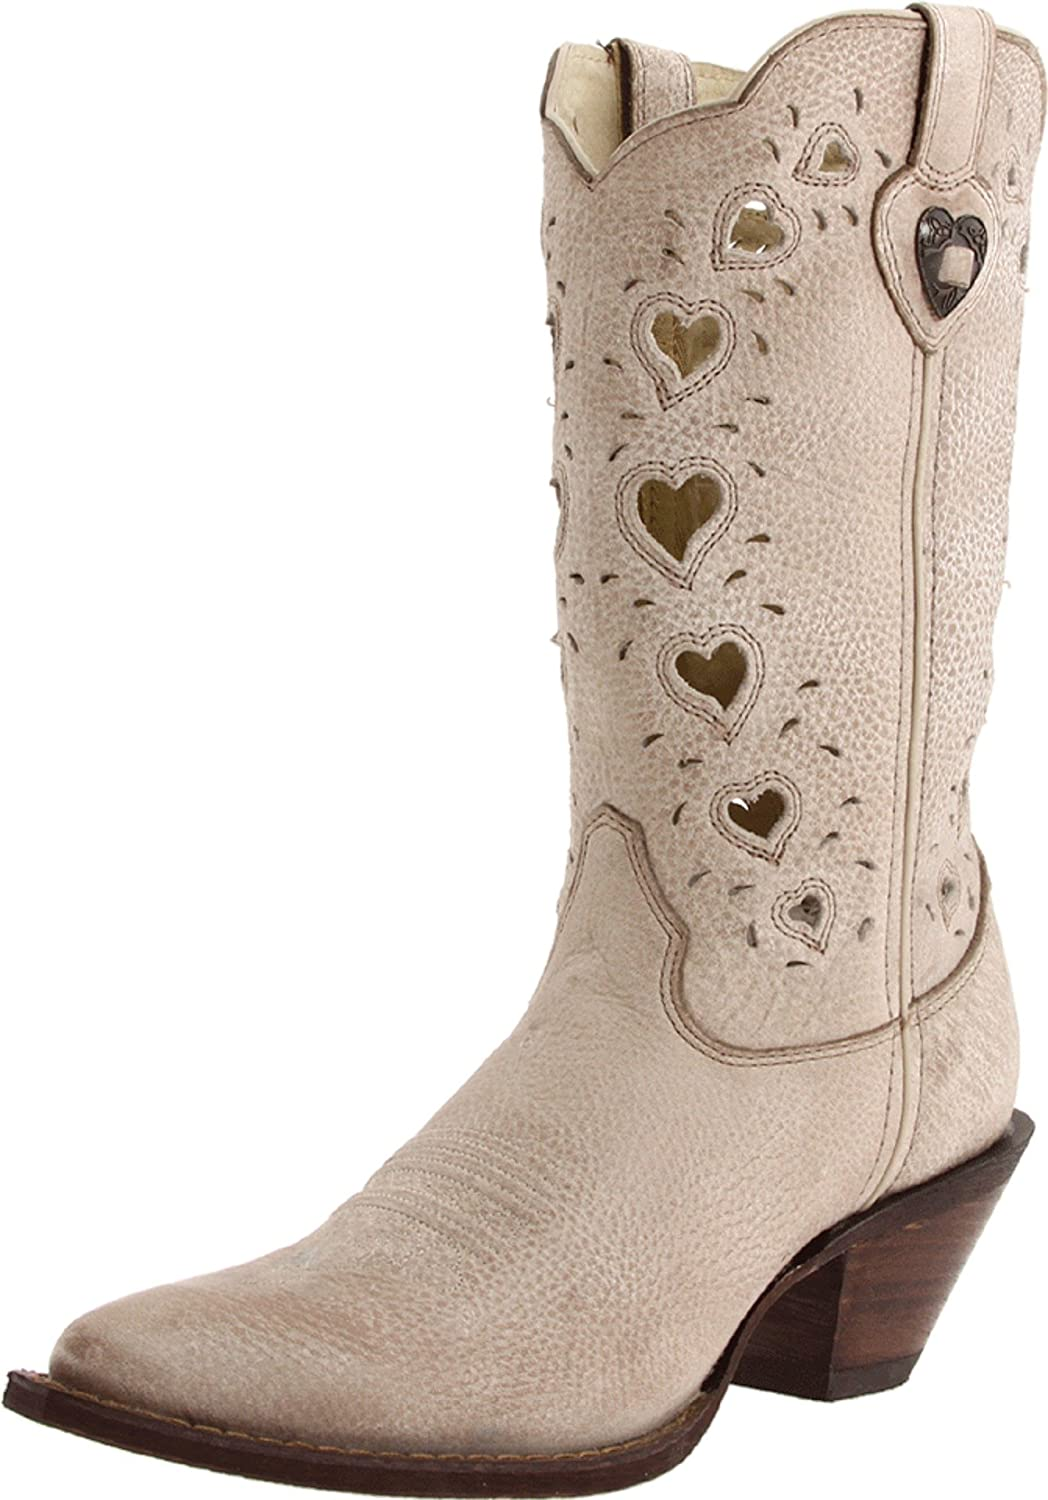 Durango Women's Crush Heart Boot B004MJF6HC 8.5 B(M) US|Light Taupe